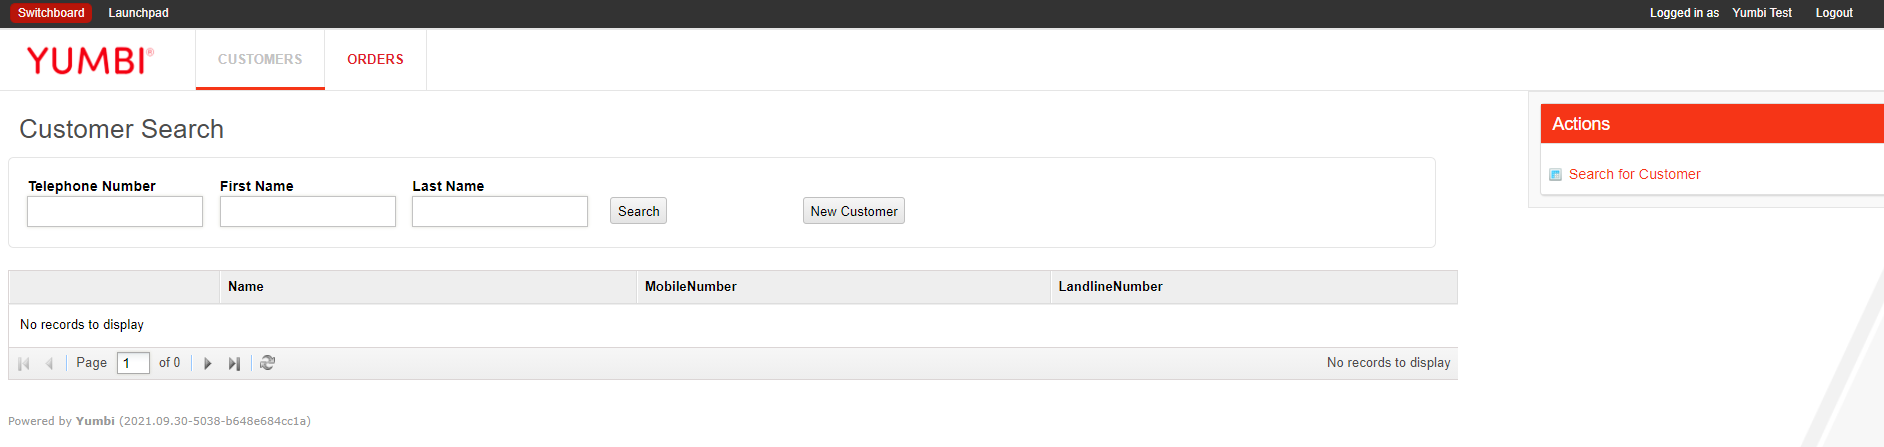 Customer Search Page.png